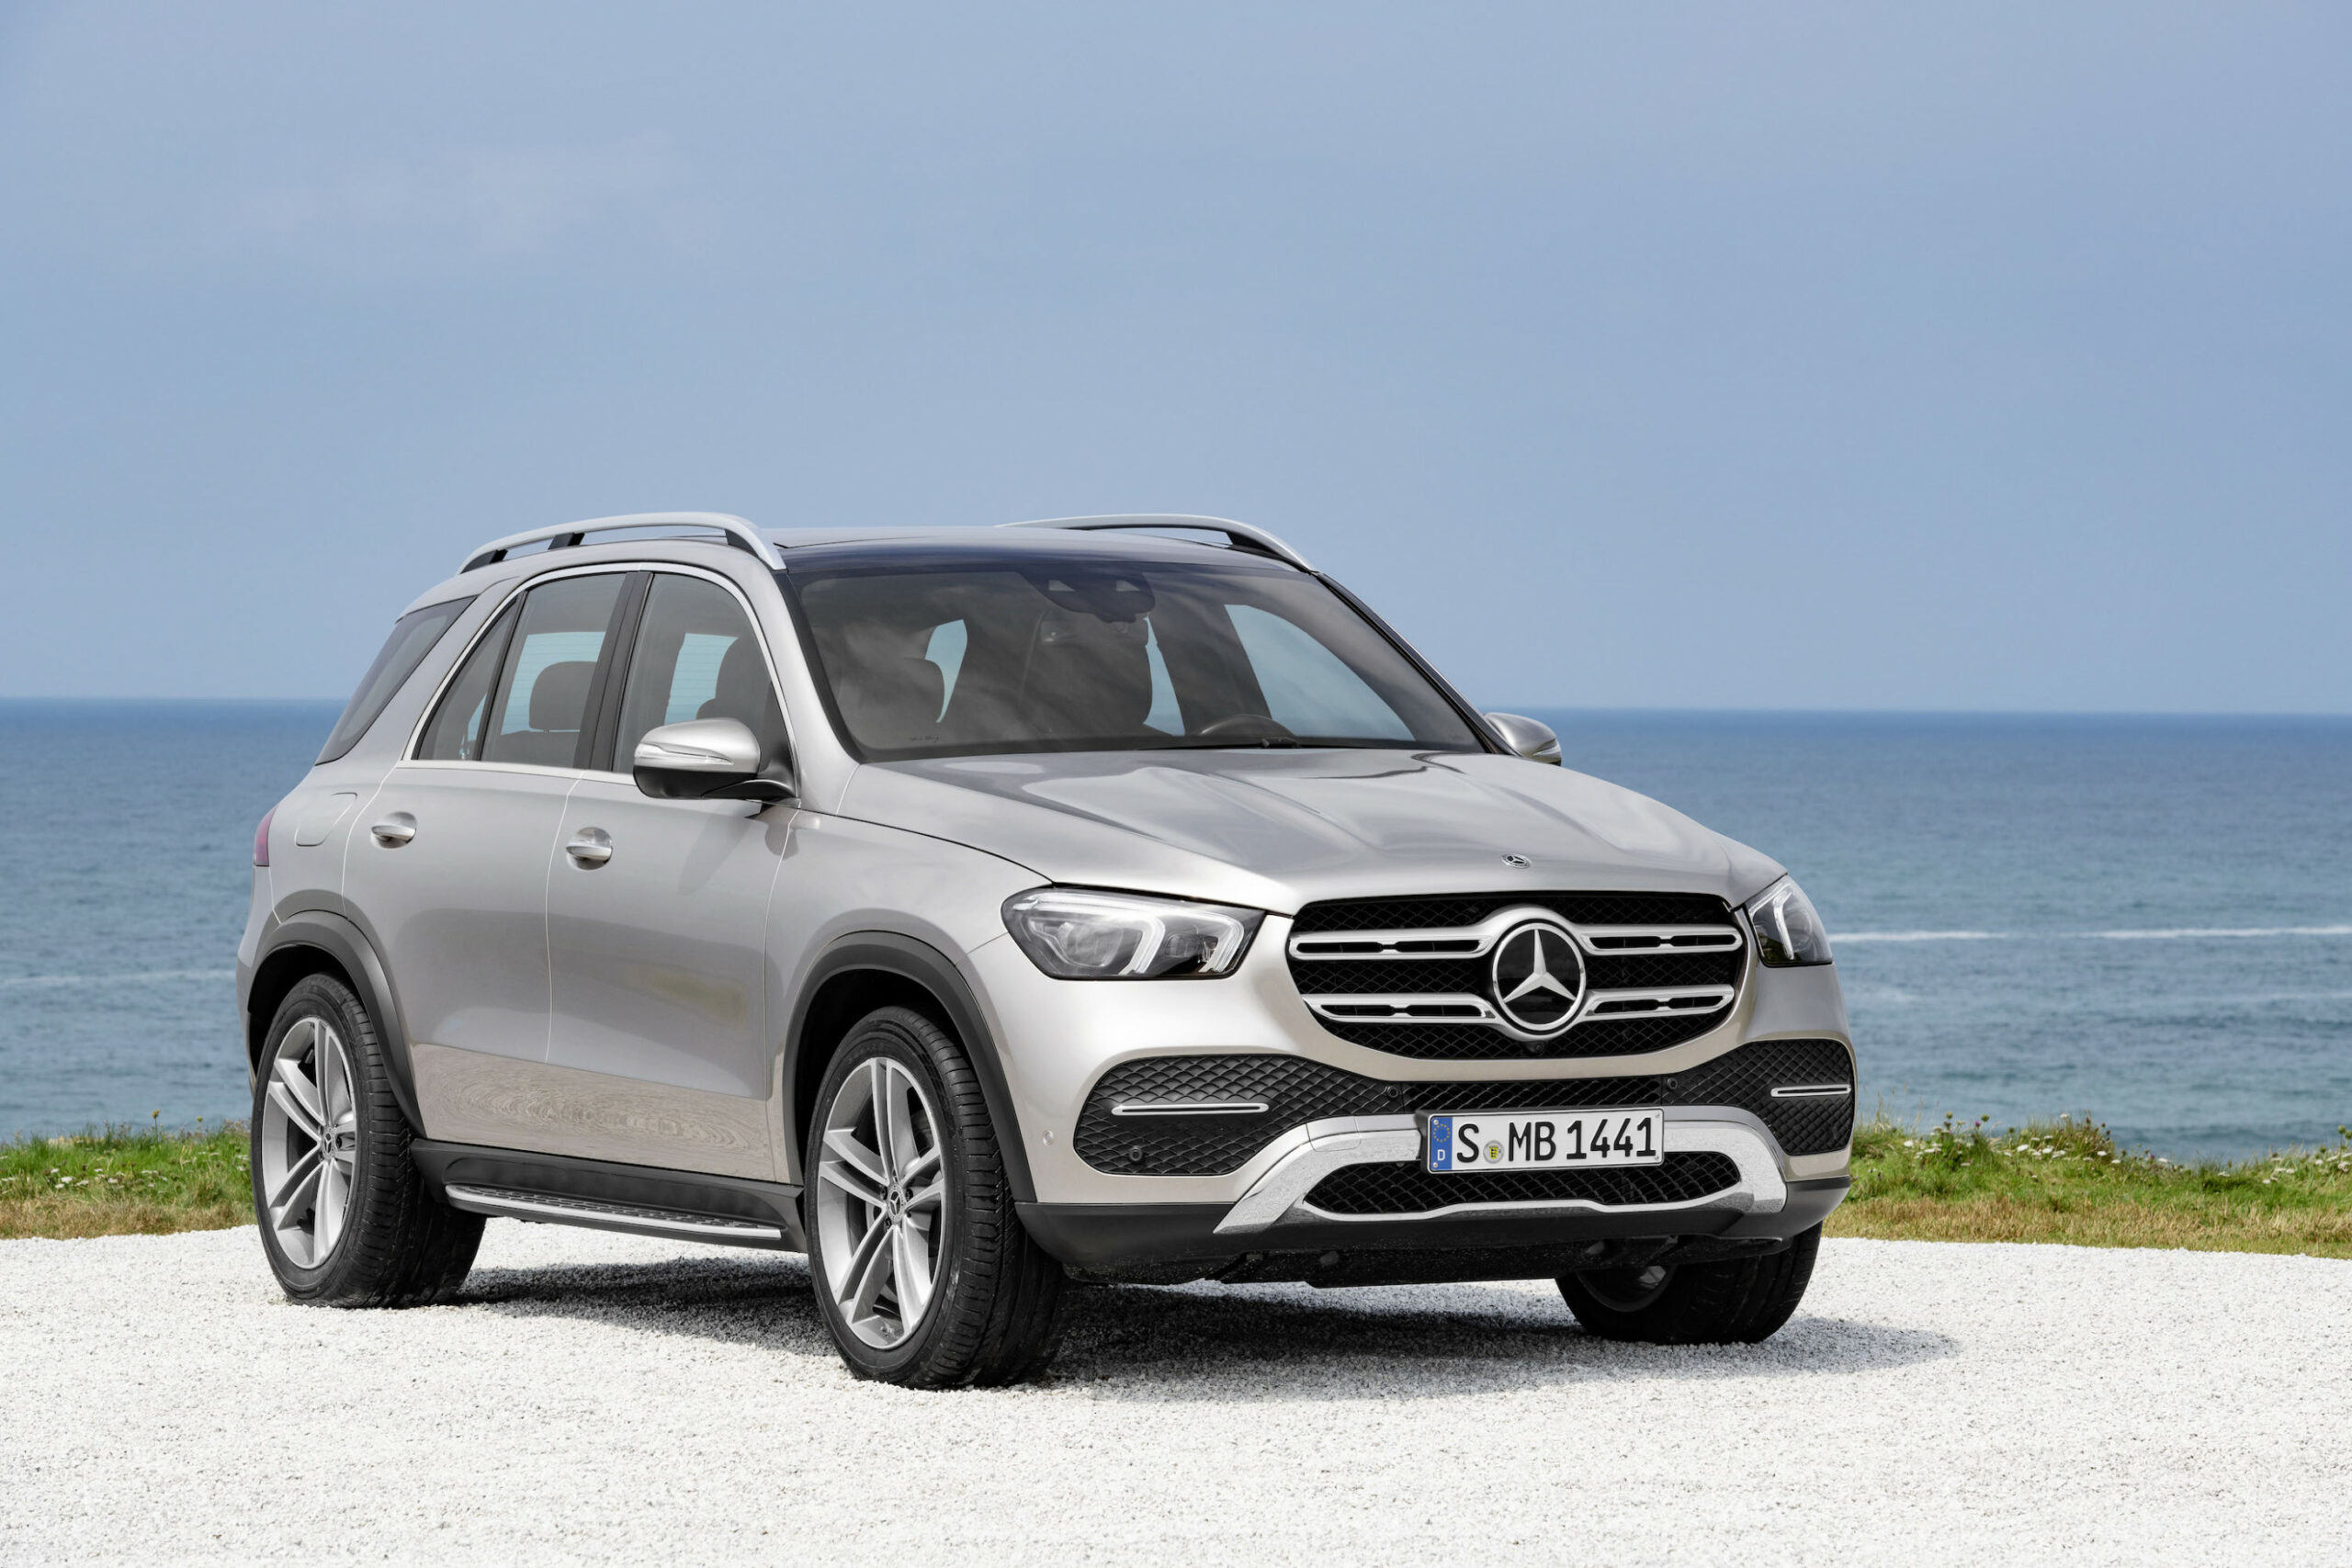 8 Things You Have To Know About The New 8 Mercedes-Benz GLE ..